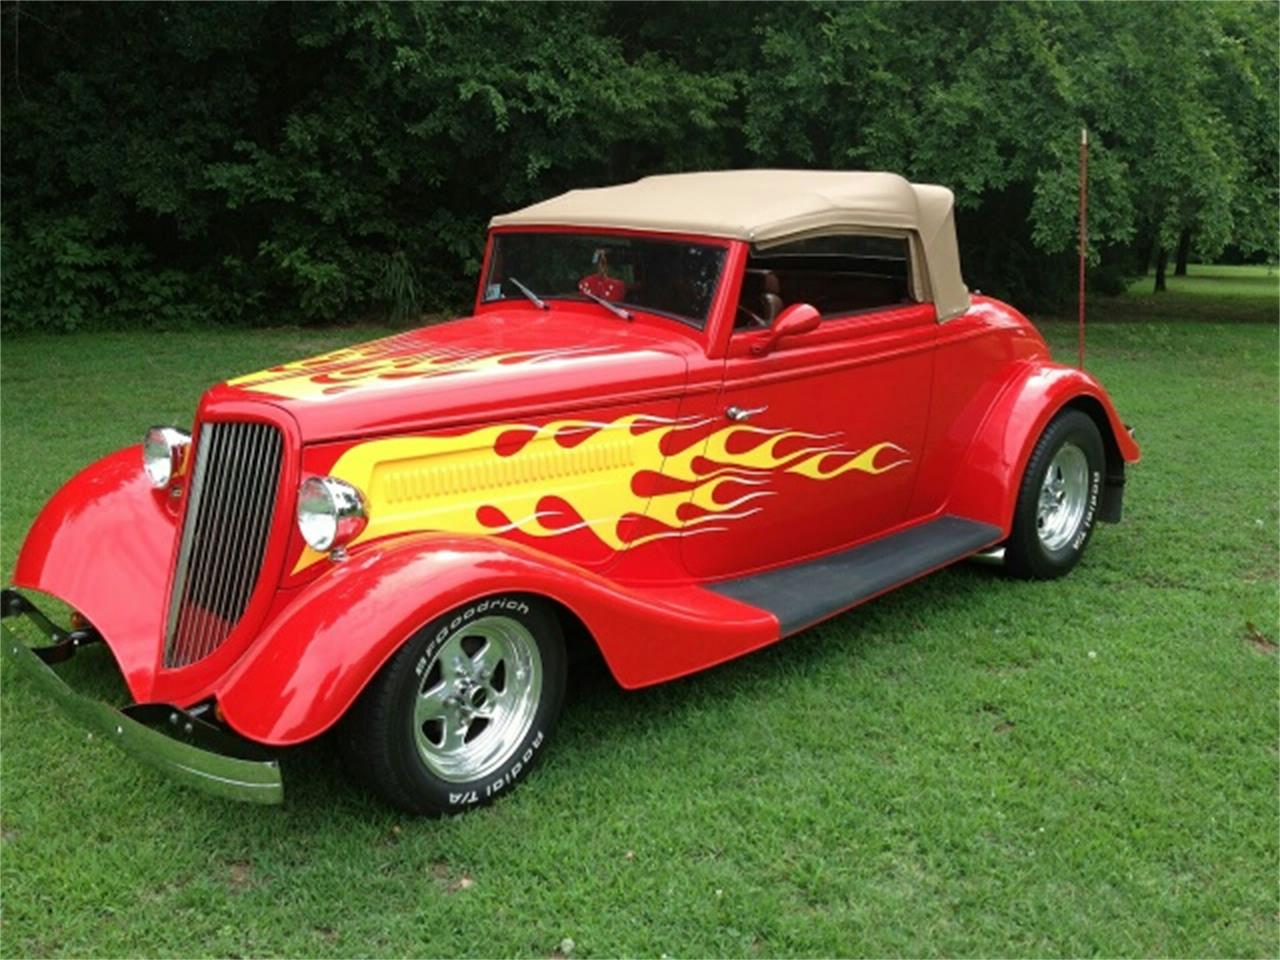 Large Picture of '34 Ford Cabriolet - $30,000.00 Offered by a Private Seller - L1H0